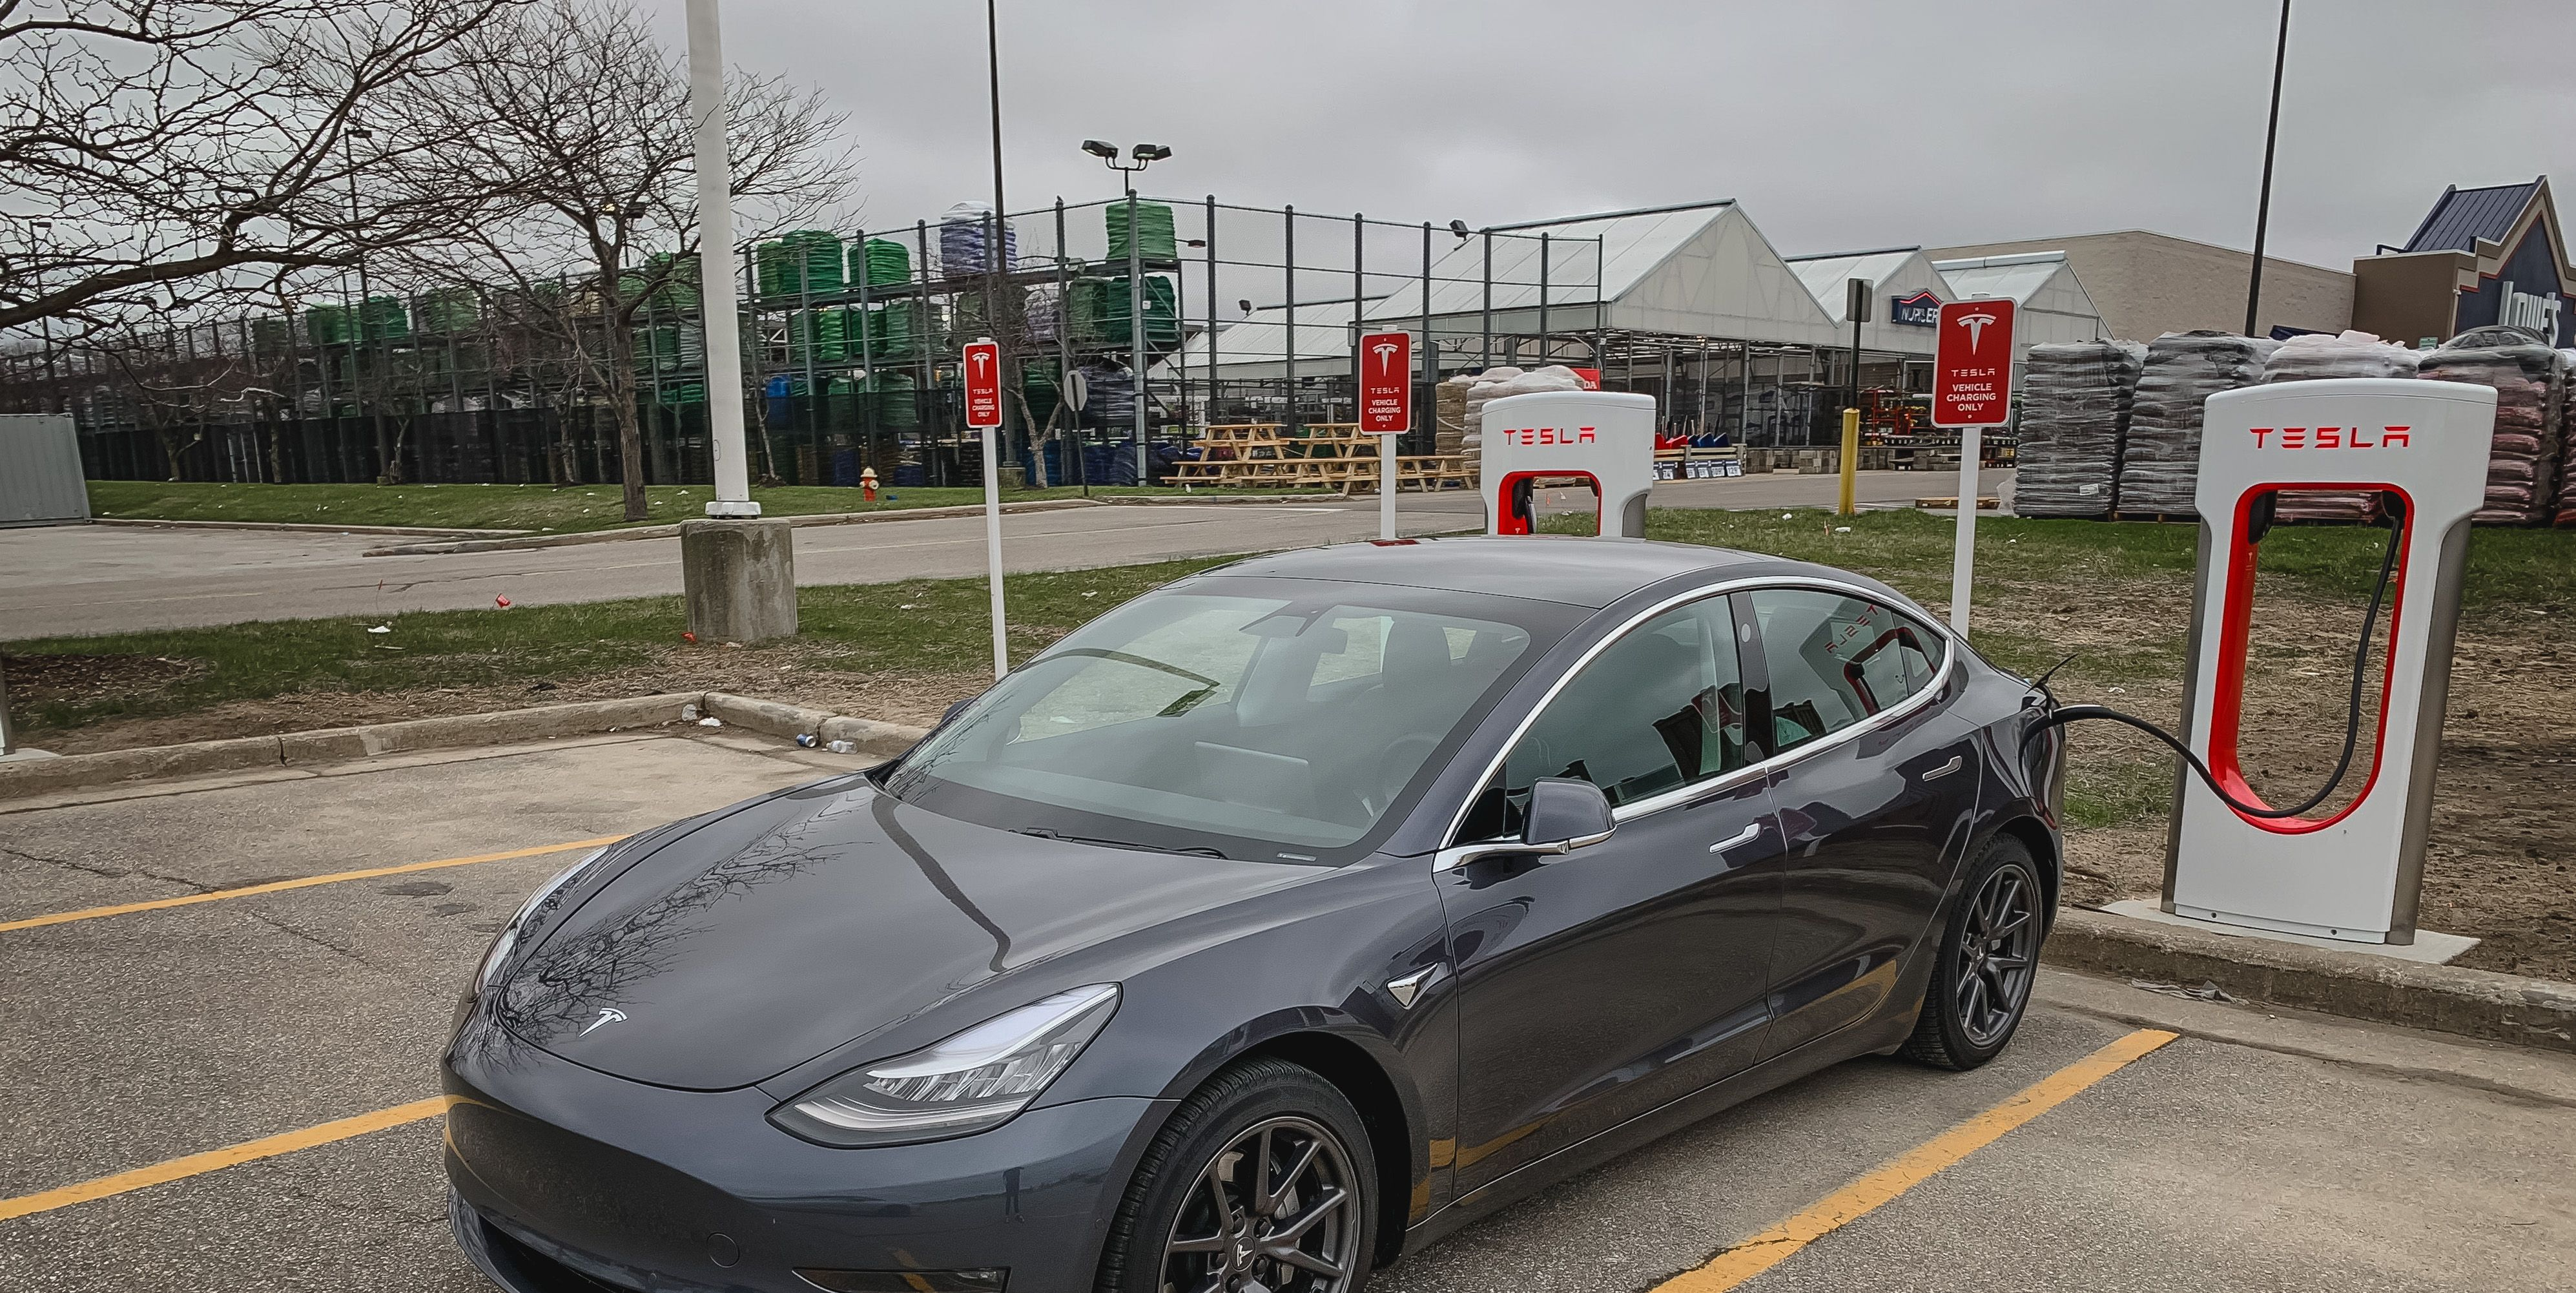 Tesla 250-kW Supercharger Saved Only 2 Minutes vs. 150-kW Charger